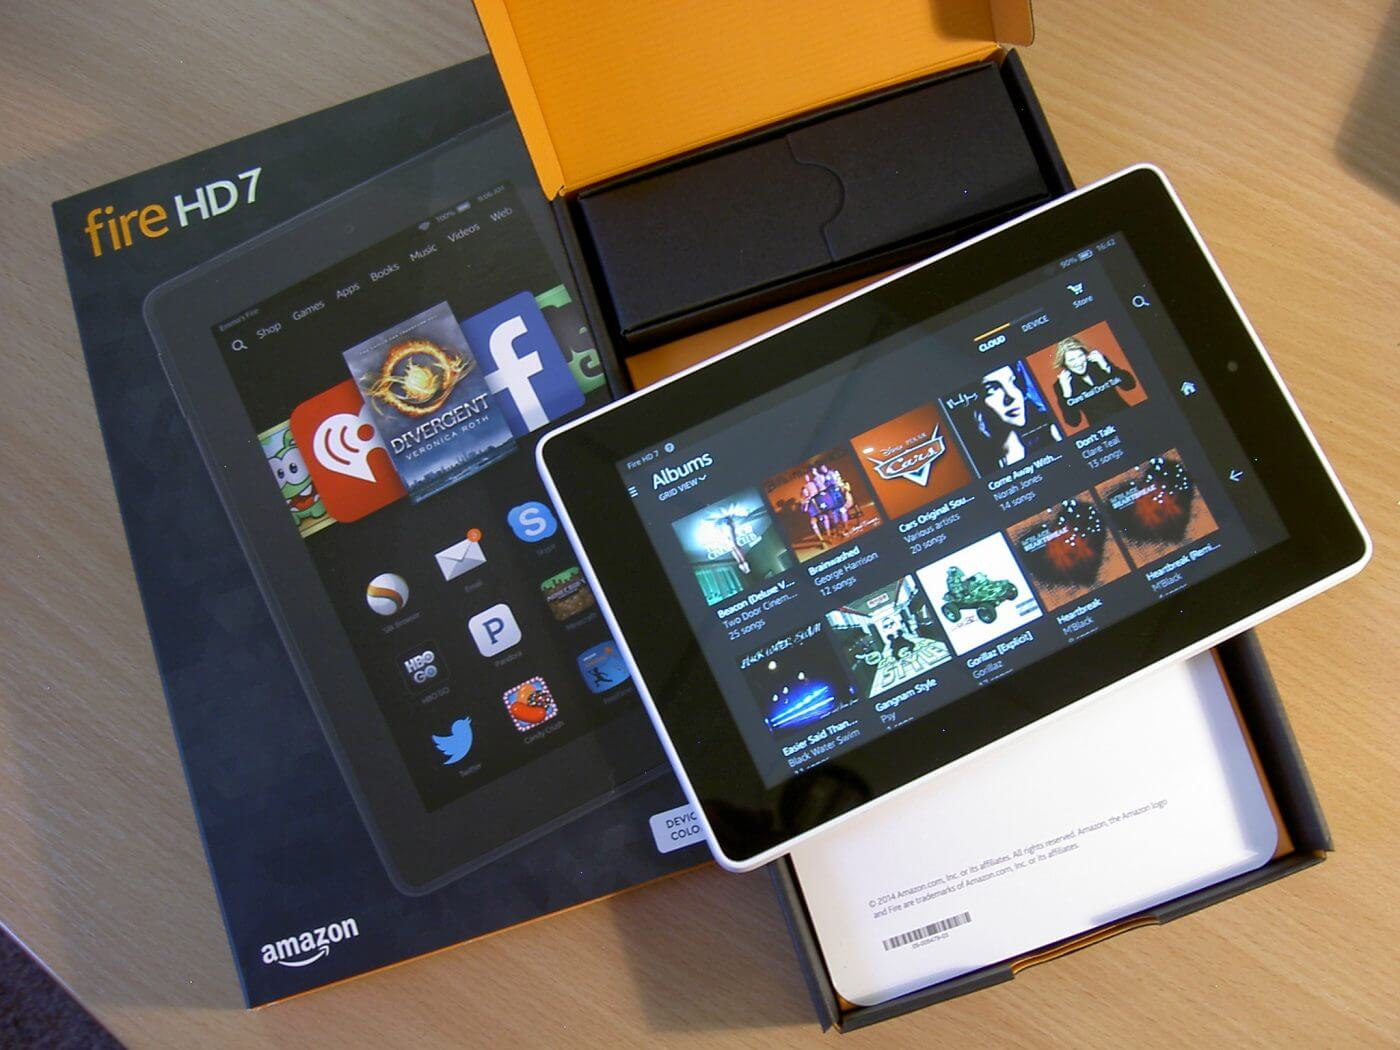 amazon fire hd 7 review geek news central. Black Bedroom Furniture Sets. Home Design Ideas